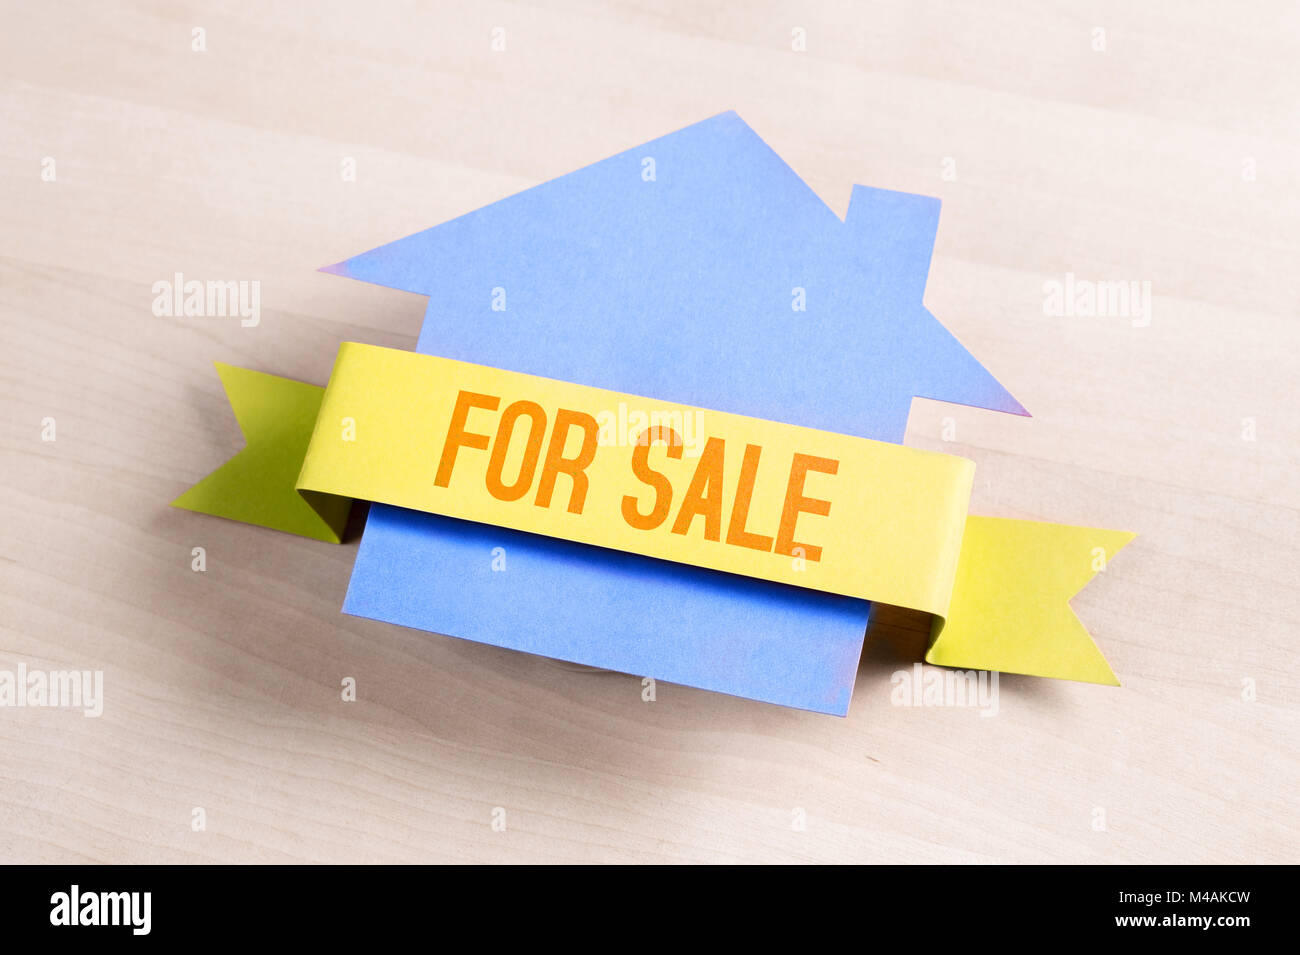 House for sale. Real estate business concept. Selling and buying home. Cottage made from cardboard paper on wooden - Stock Image